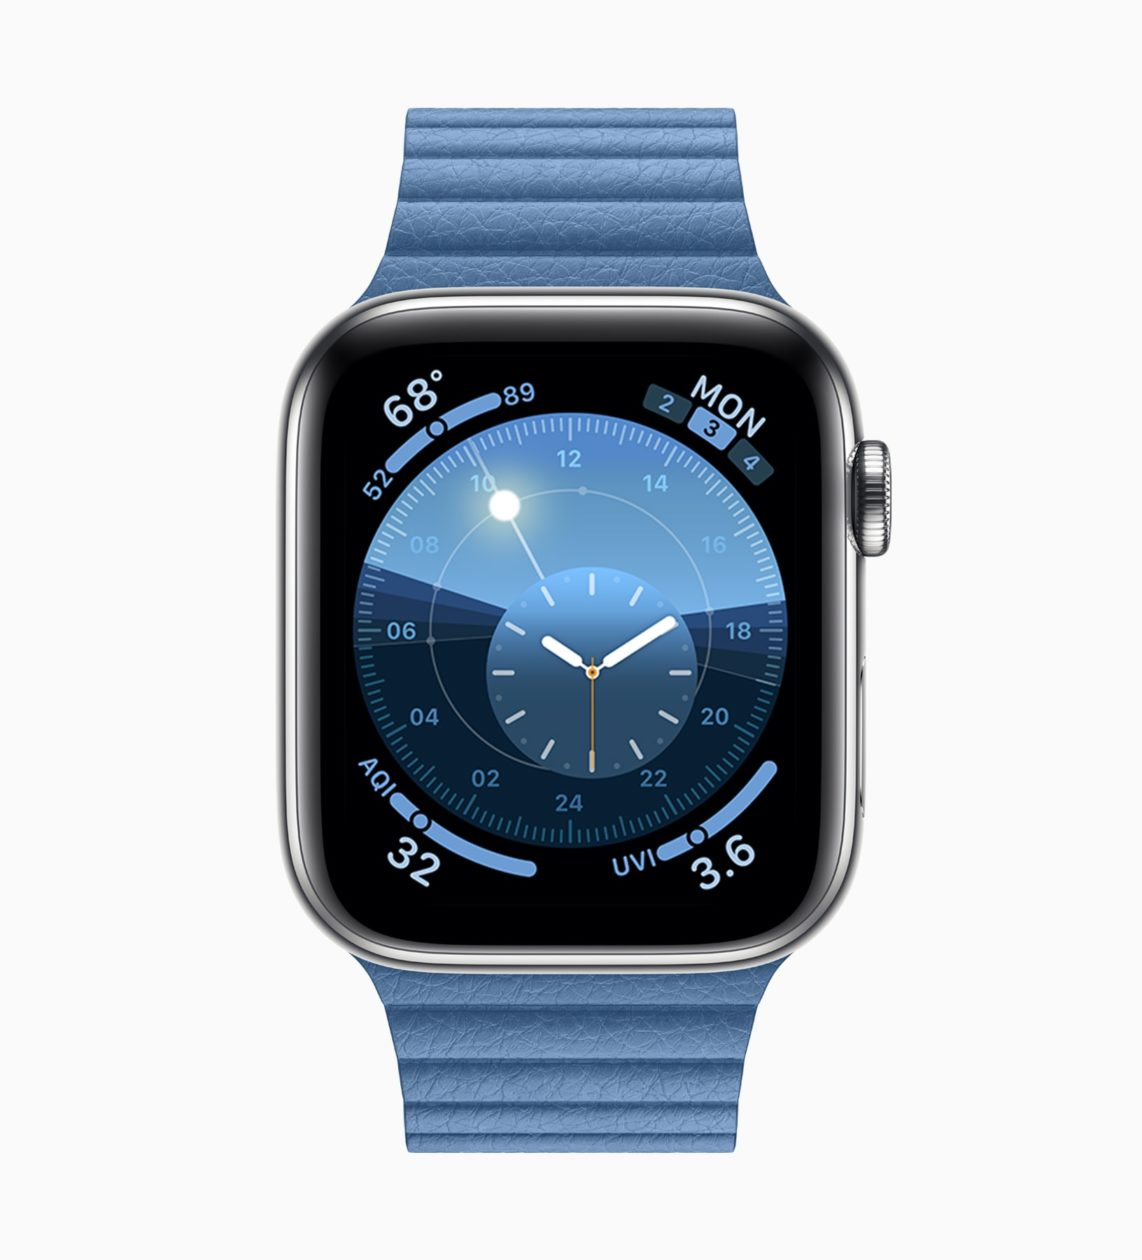 Novo mostrador do watchOS 6